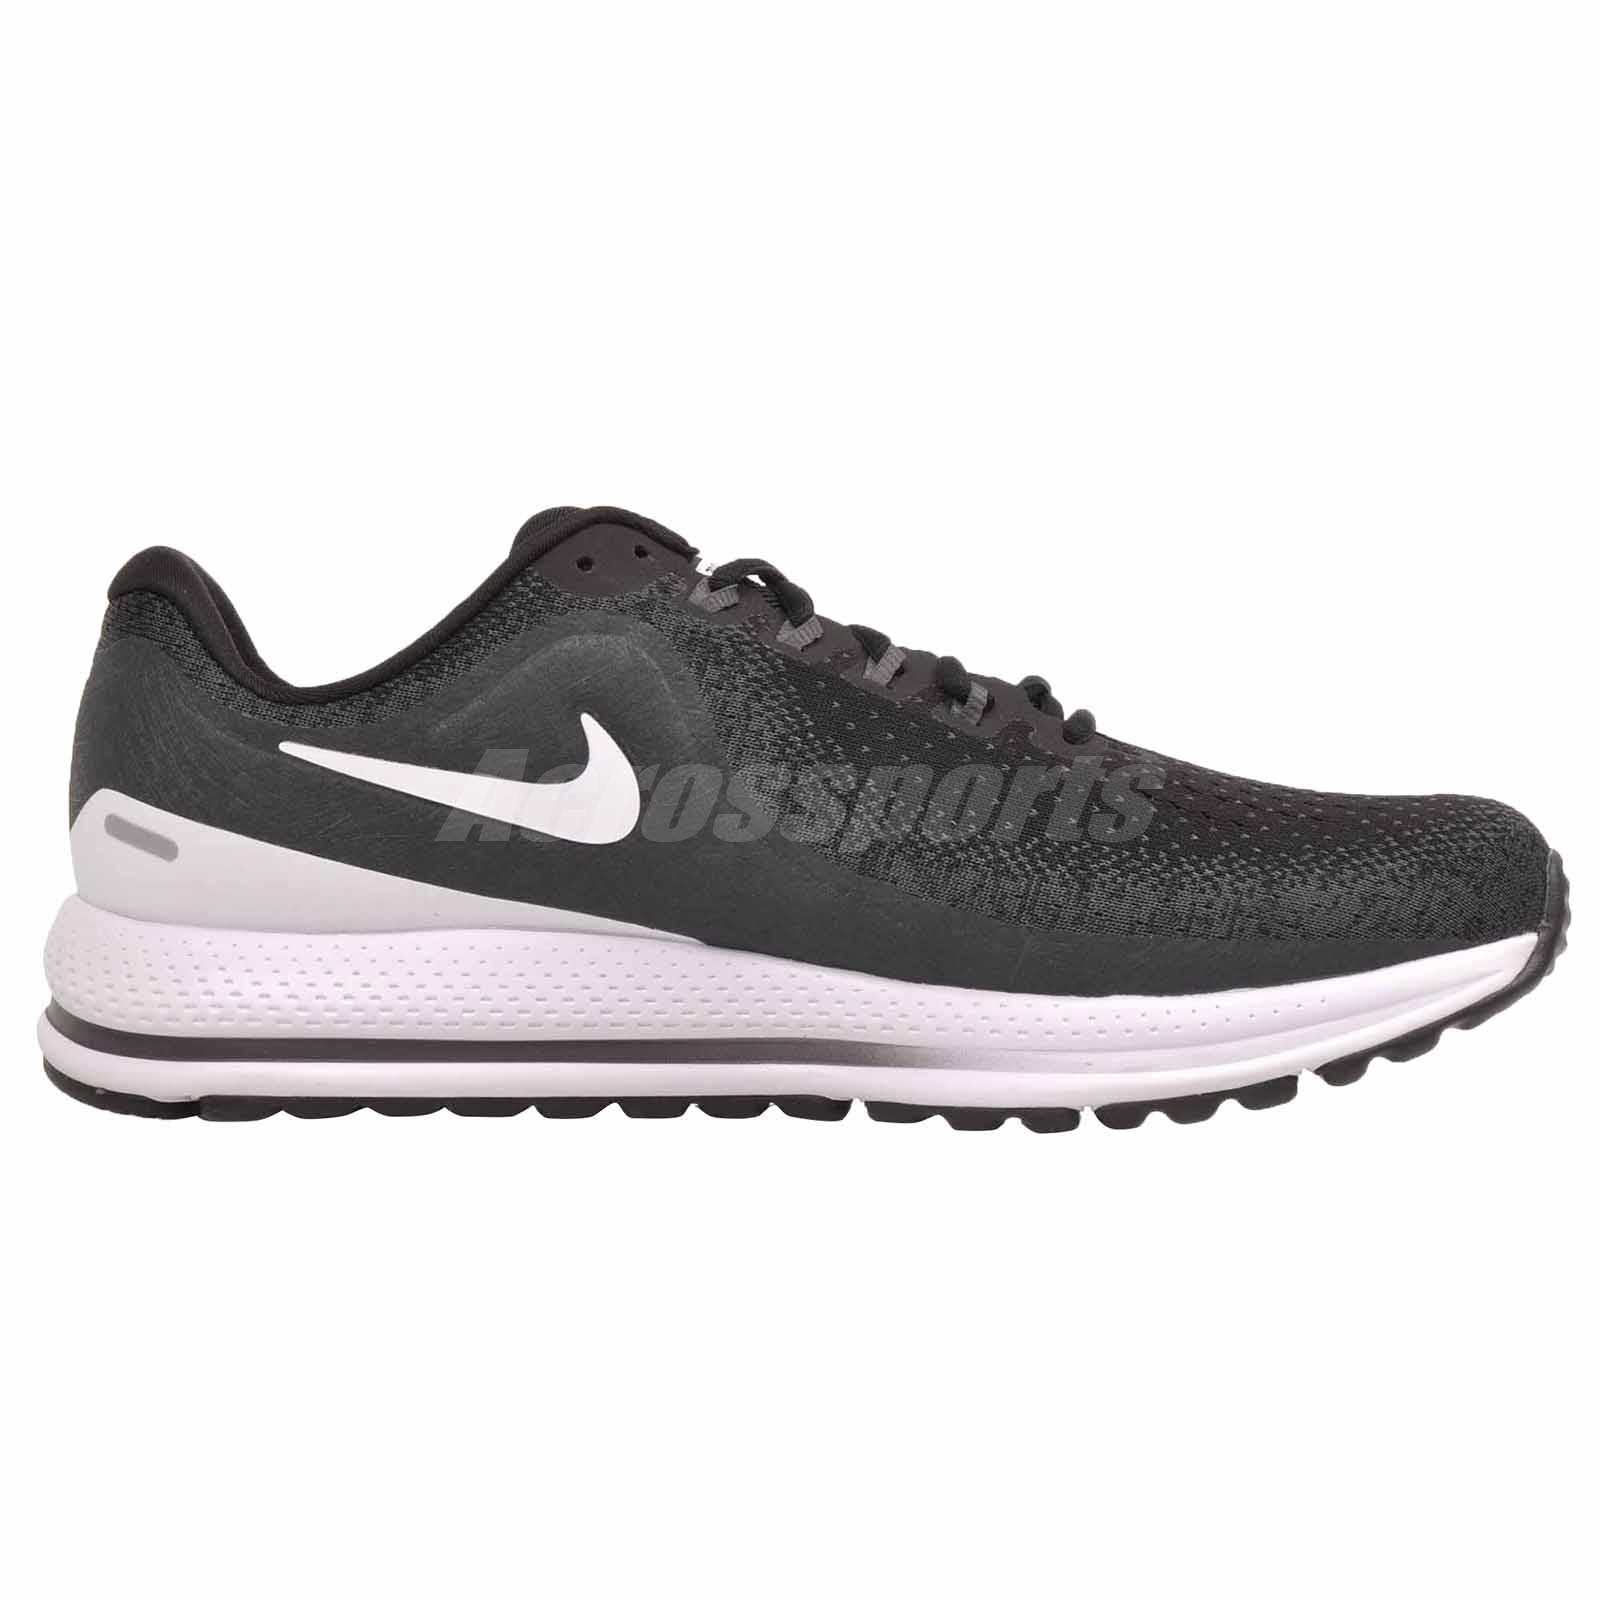 10b4888e60dd3 Nike Air Zoom Vomero 13 (4E) Running Mens Shoes Wide Black White ...